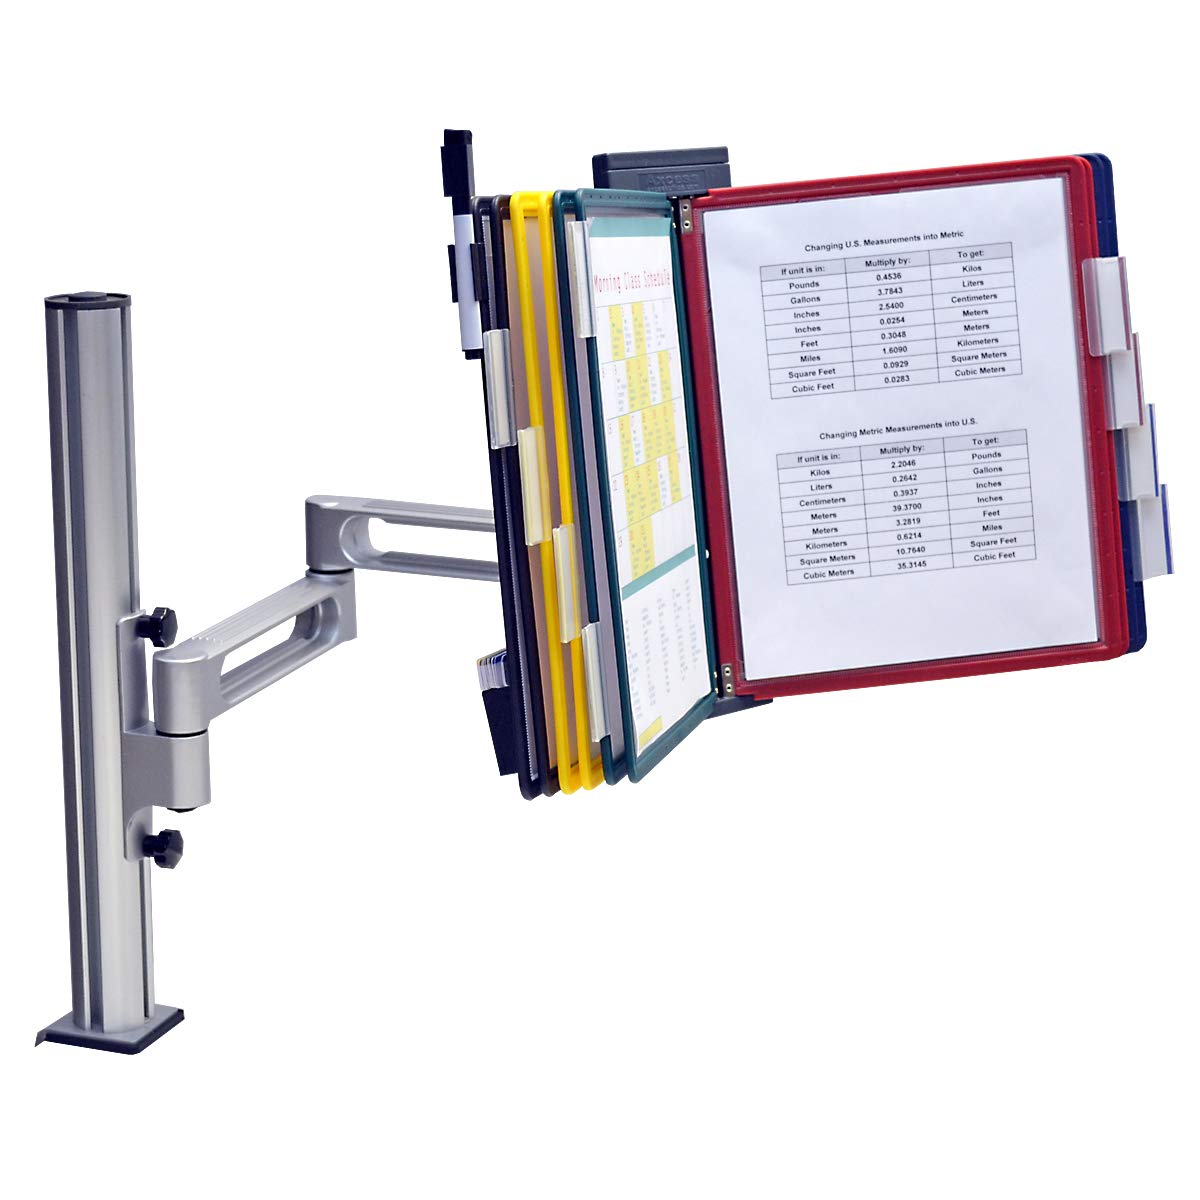 Outpost 2-Link, 10-Pocket Desk Clamp Reference Organizer with Post, Black w/Assorted Pockets